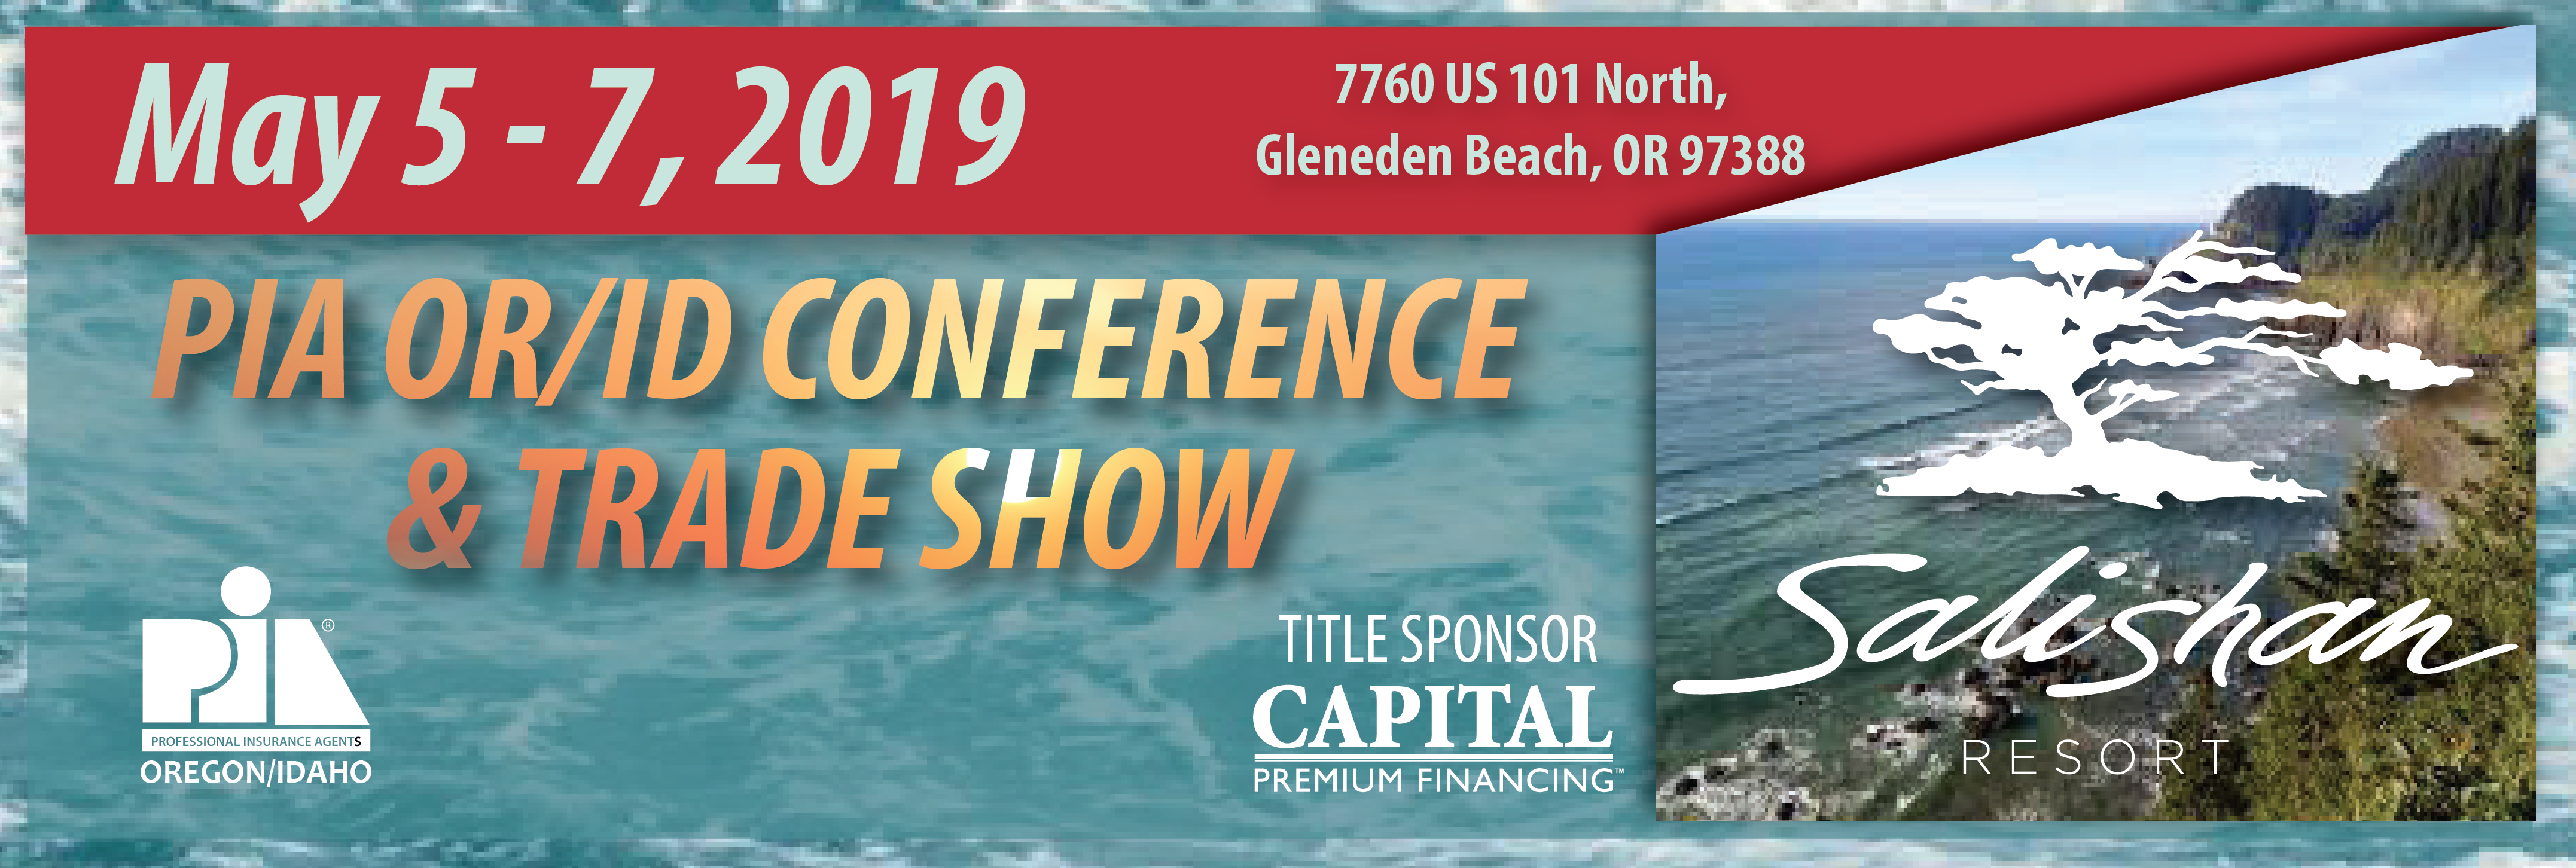 2019 OR ID Conference Tradeshow PIA Western Alliance